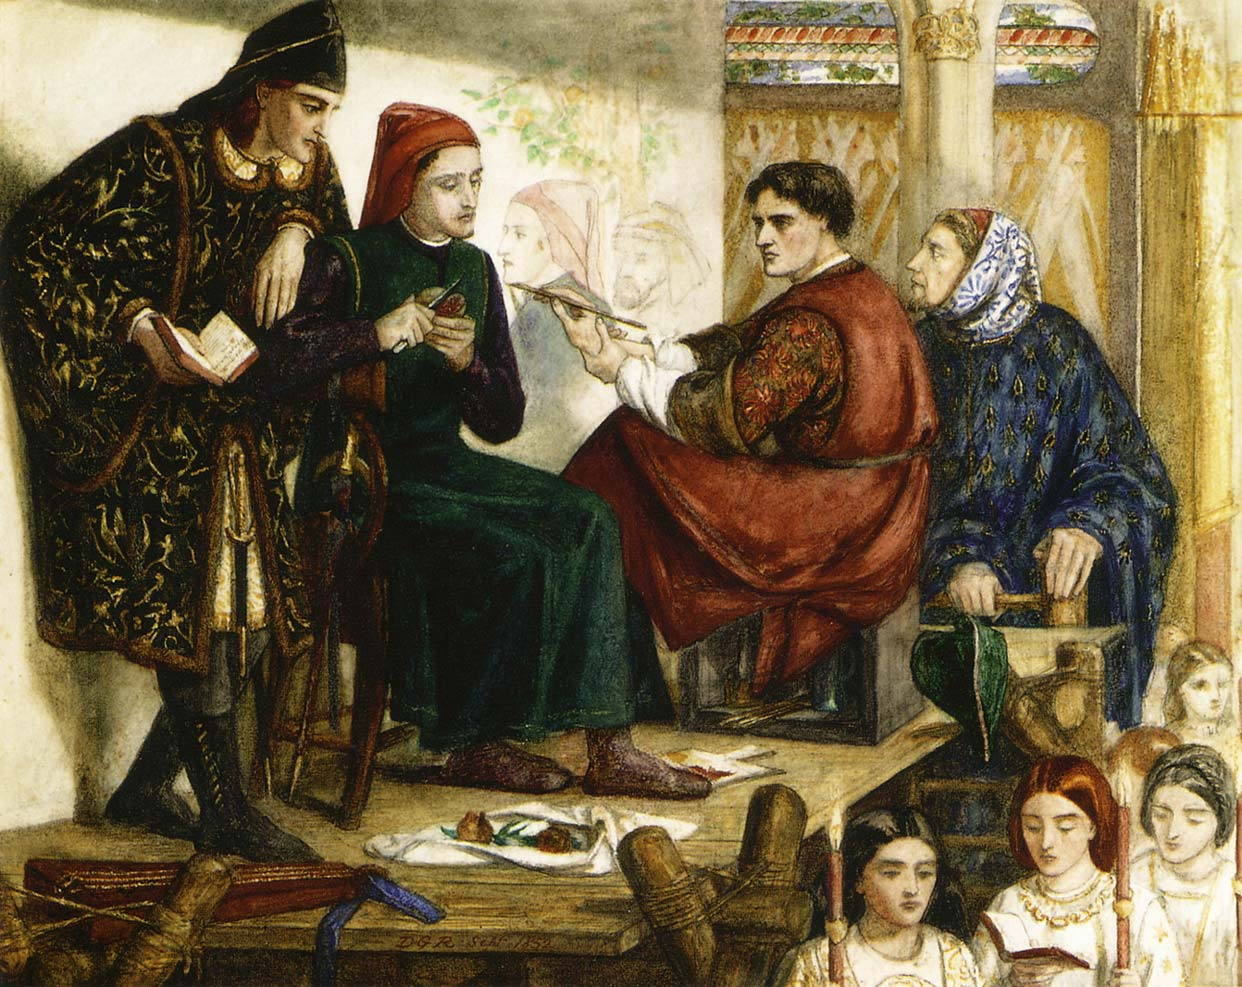 Giotto Painting the Portrait of Dante, 1852